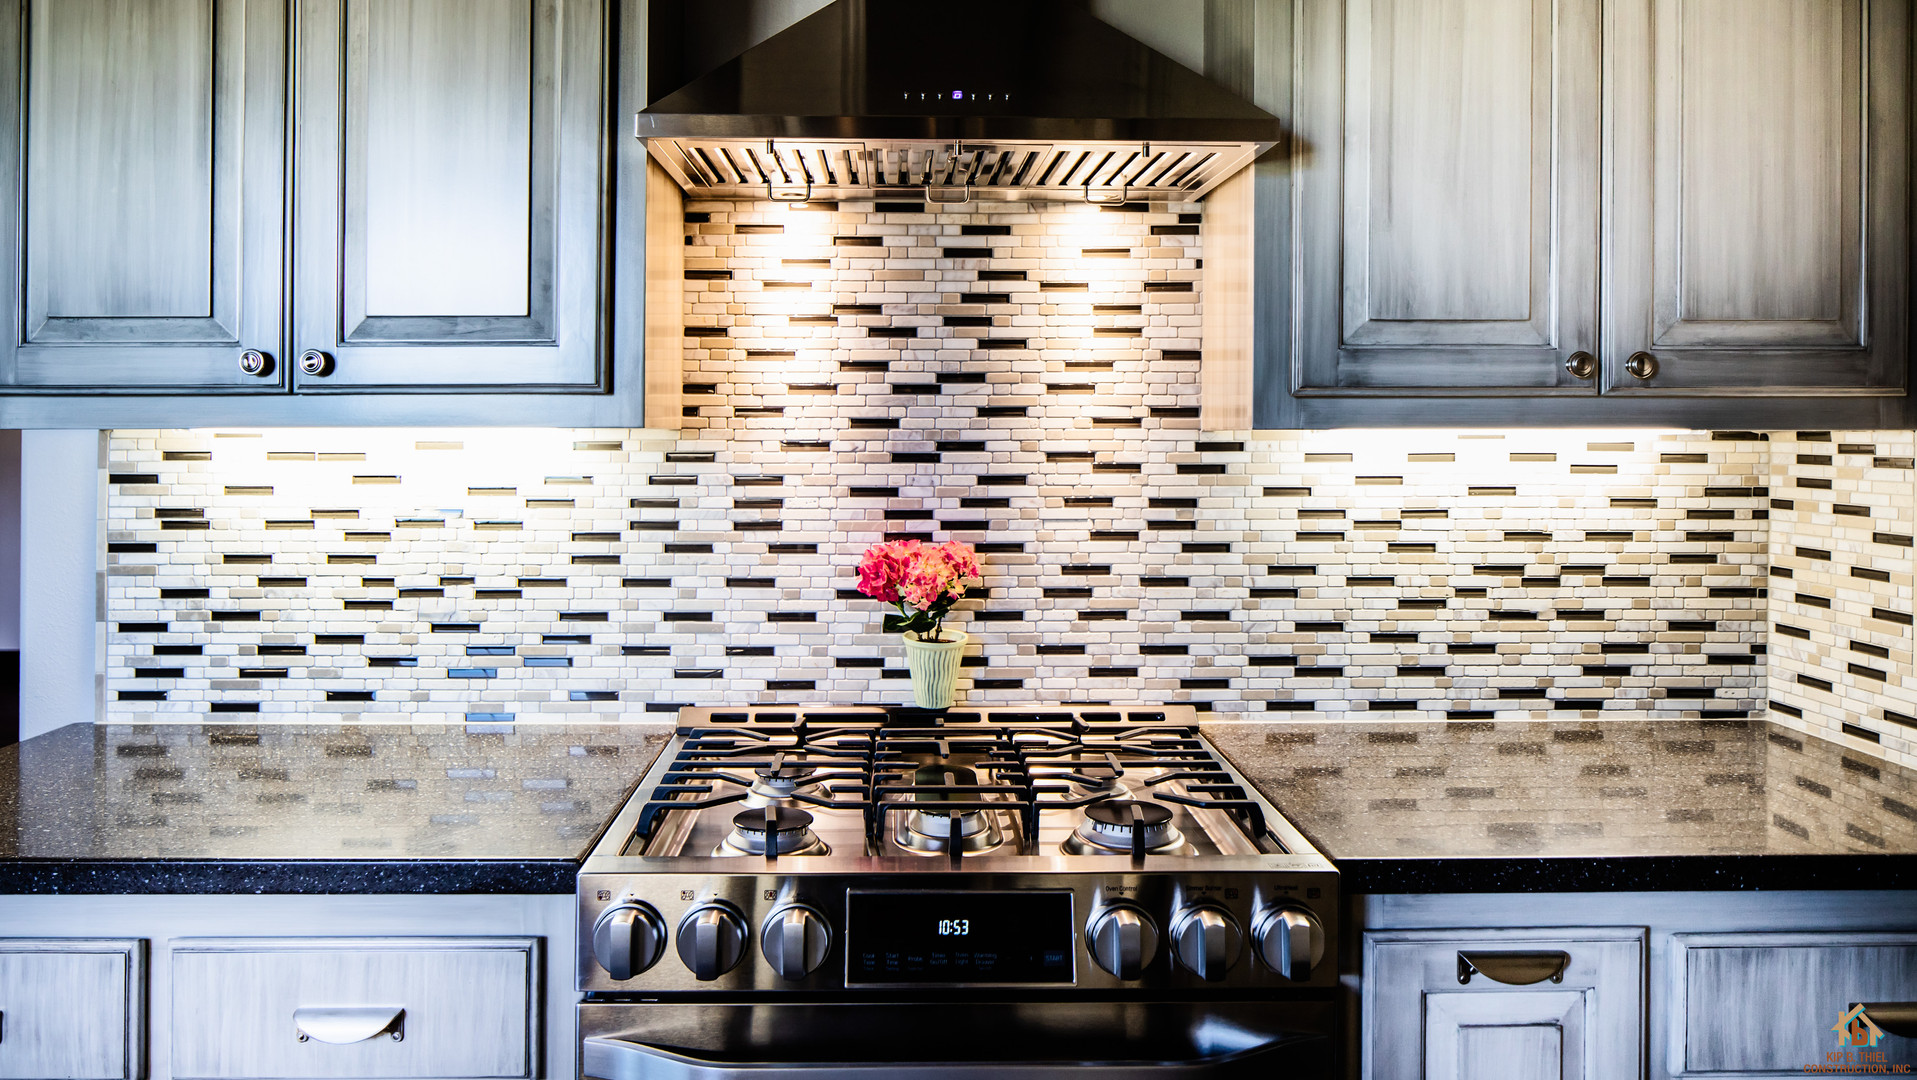 Glazed White Lacquer Kitchen with drawer pulls, solid surface countertops and glass tile backsplash.